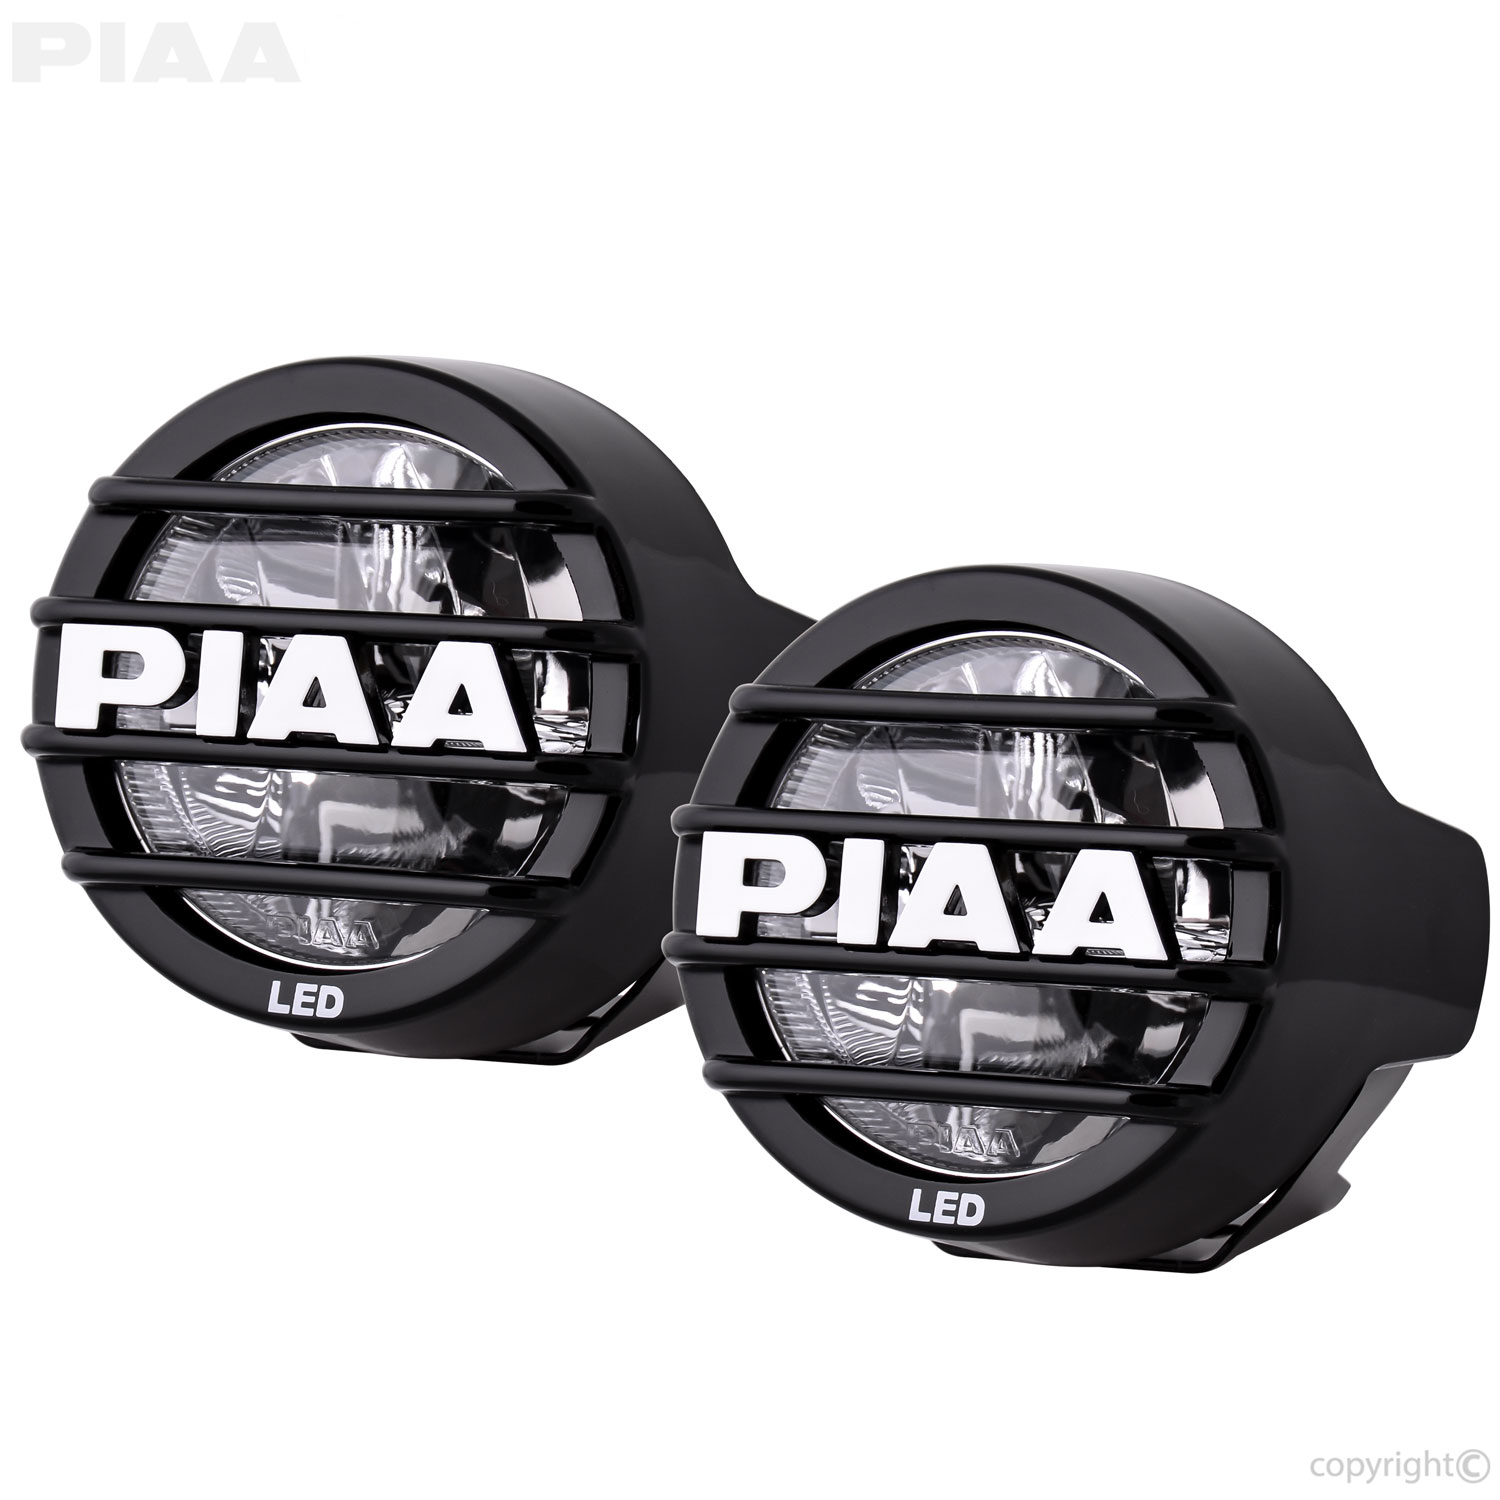 piaa 05370 530 led dual hr?bw=1000&w=1000&bh=1000&h=1000 piaa piaa lp530 led white wide spread fog beam kit 05370 piaa fog light wiring harness at alyssarenee.co